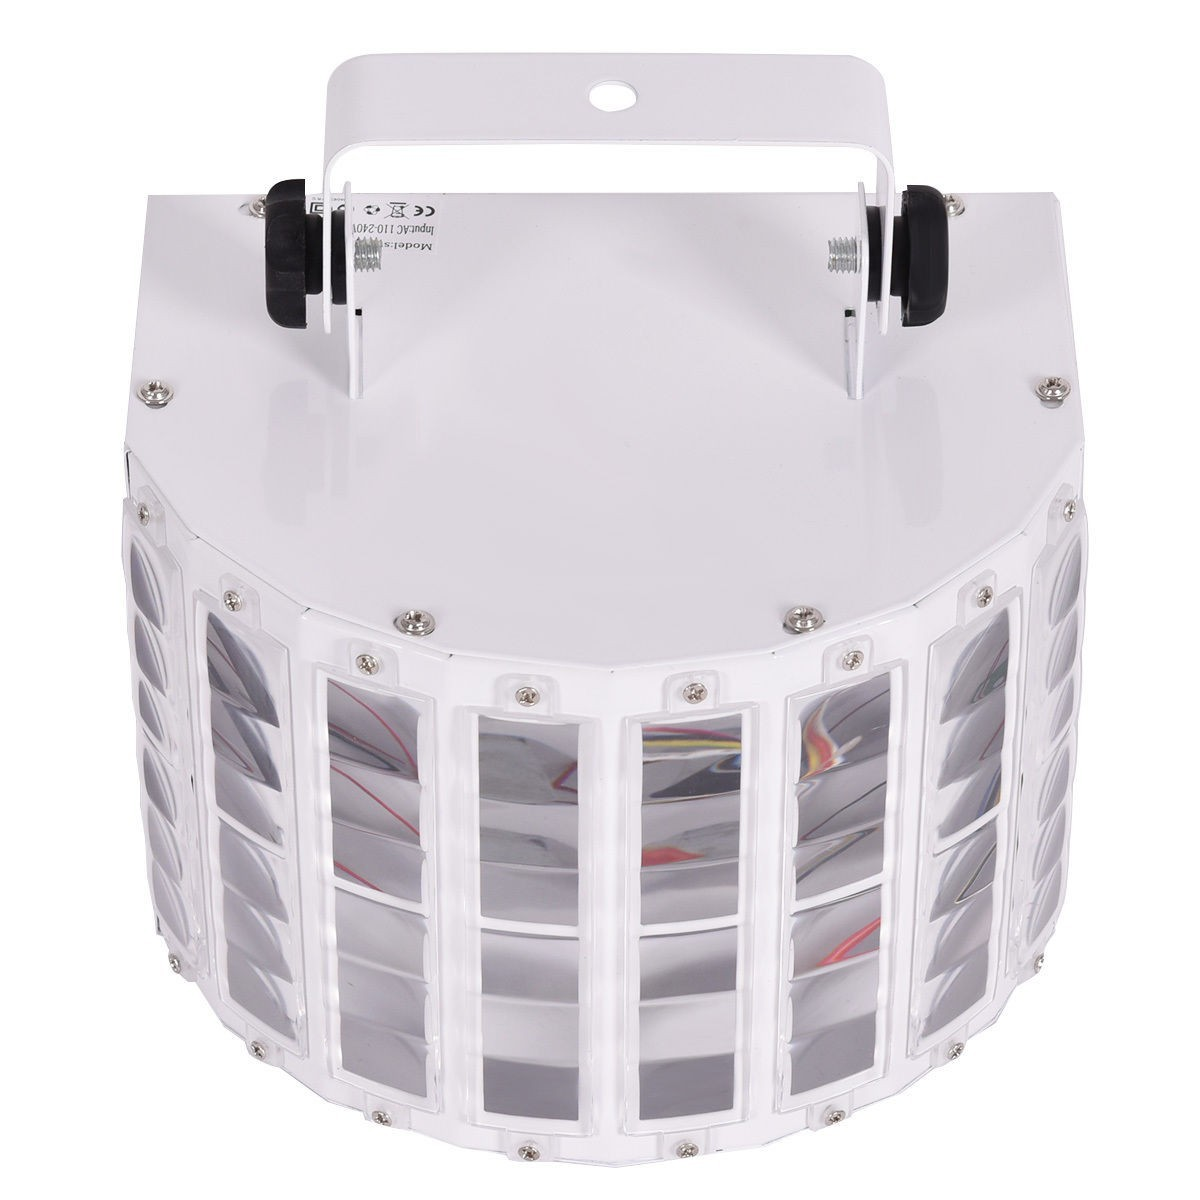 25W 8 LED DMX512 Stage Projector Light Laser RGBW Party Show Disco KTV Pub by